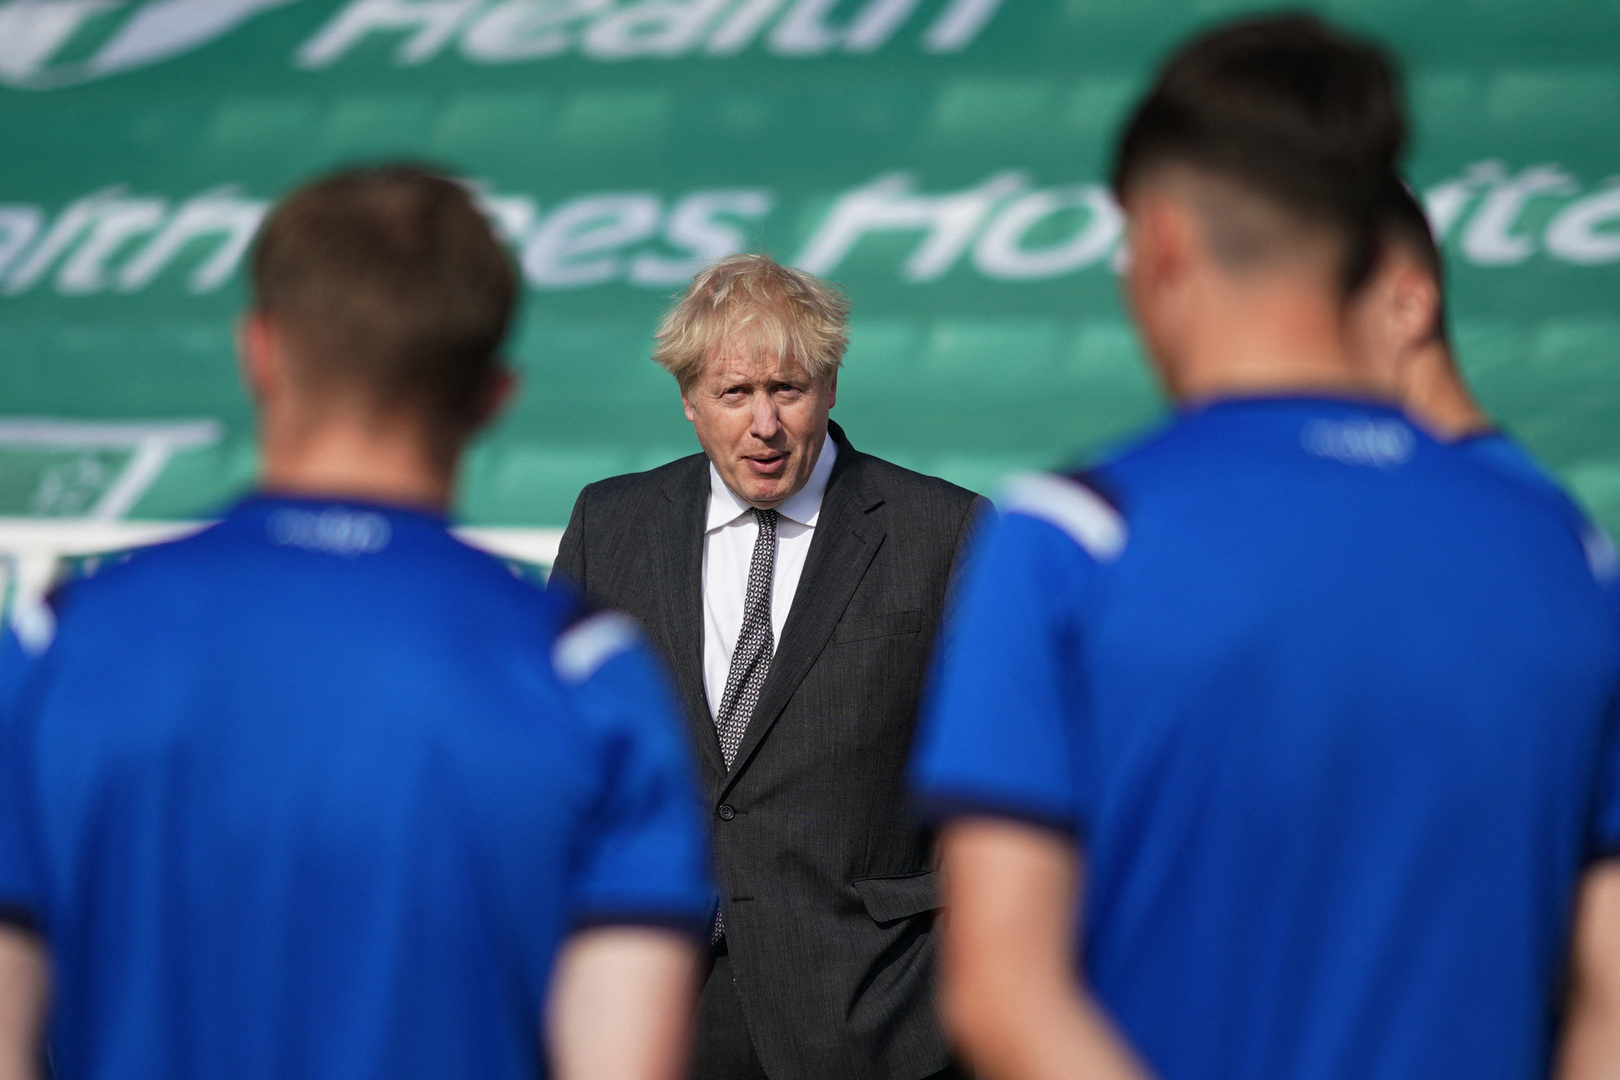 Johnson in an awkward position due to racism against England players